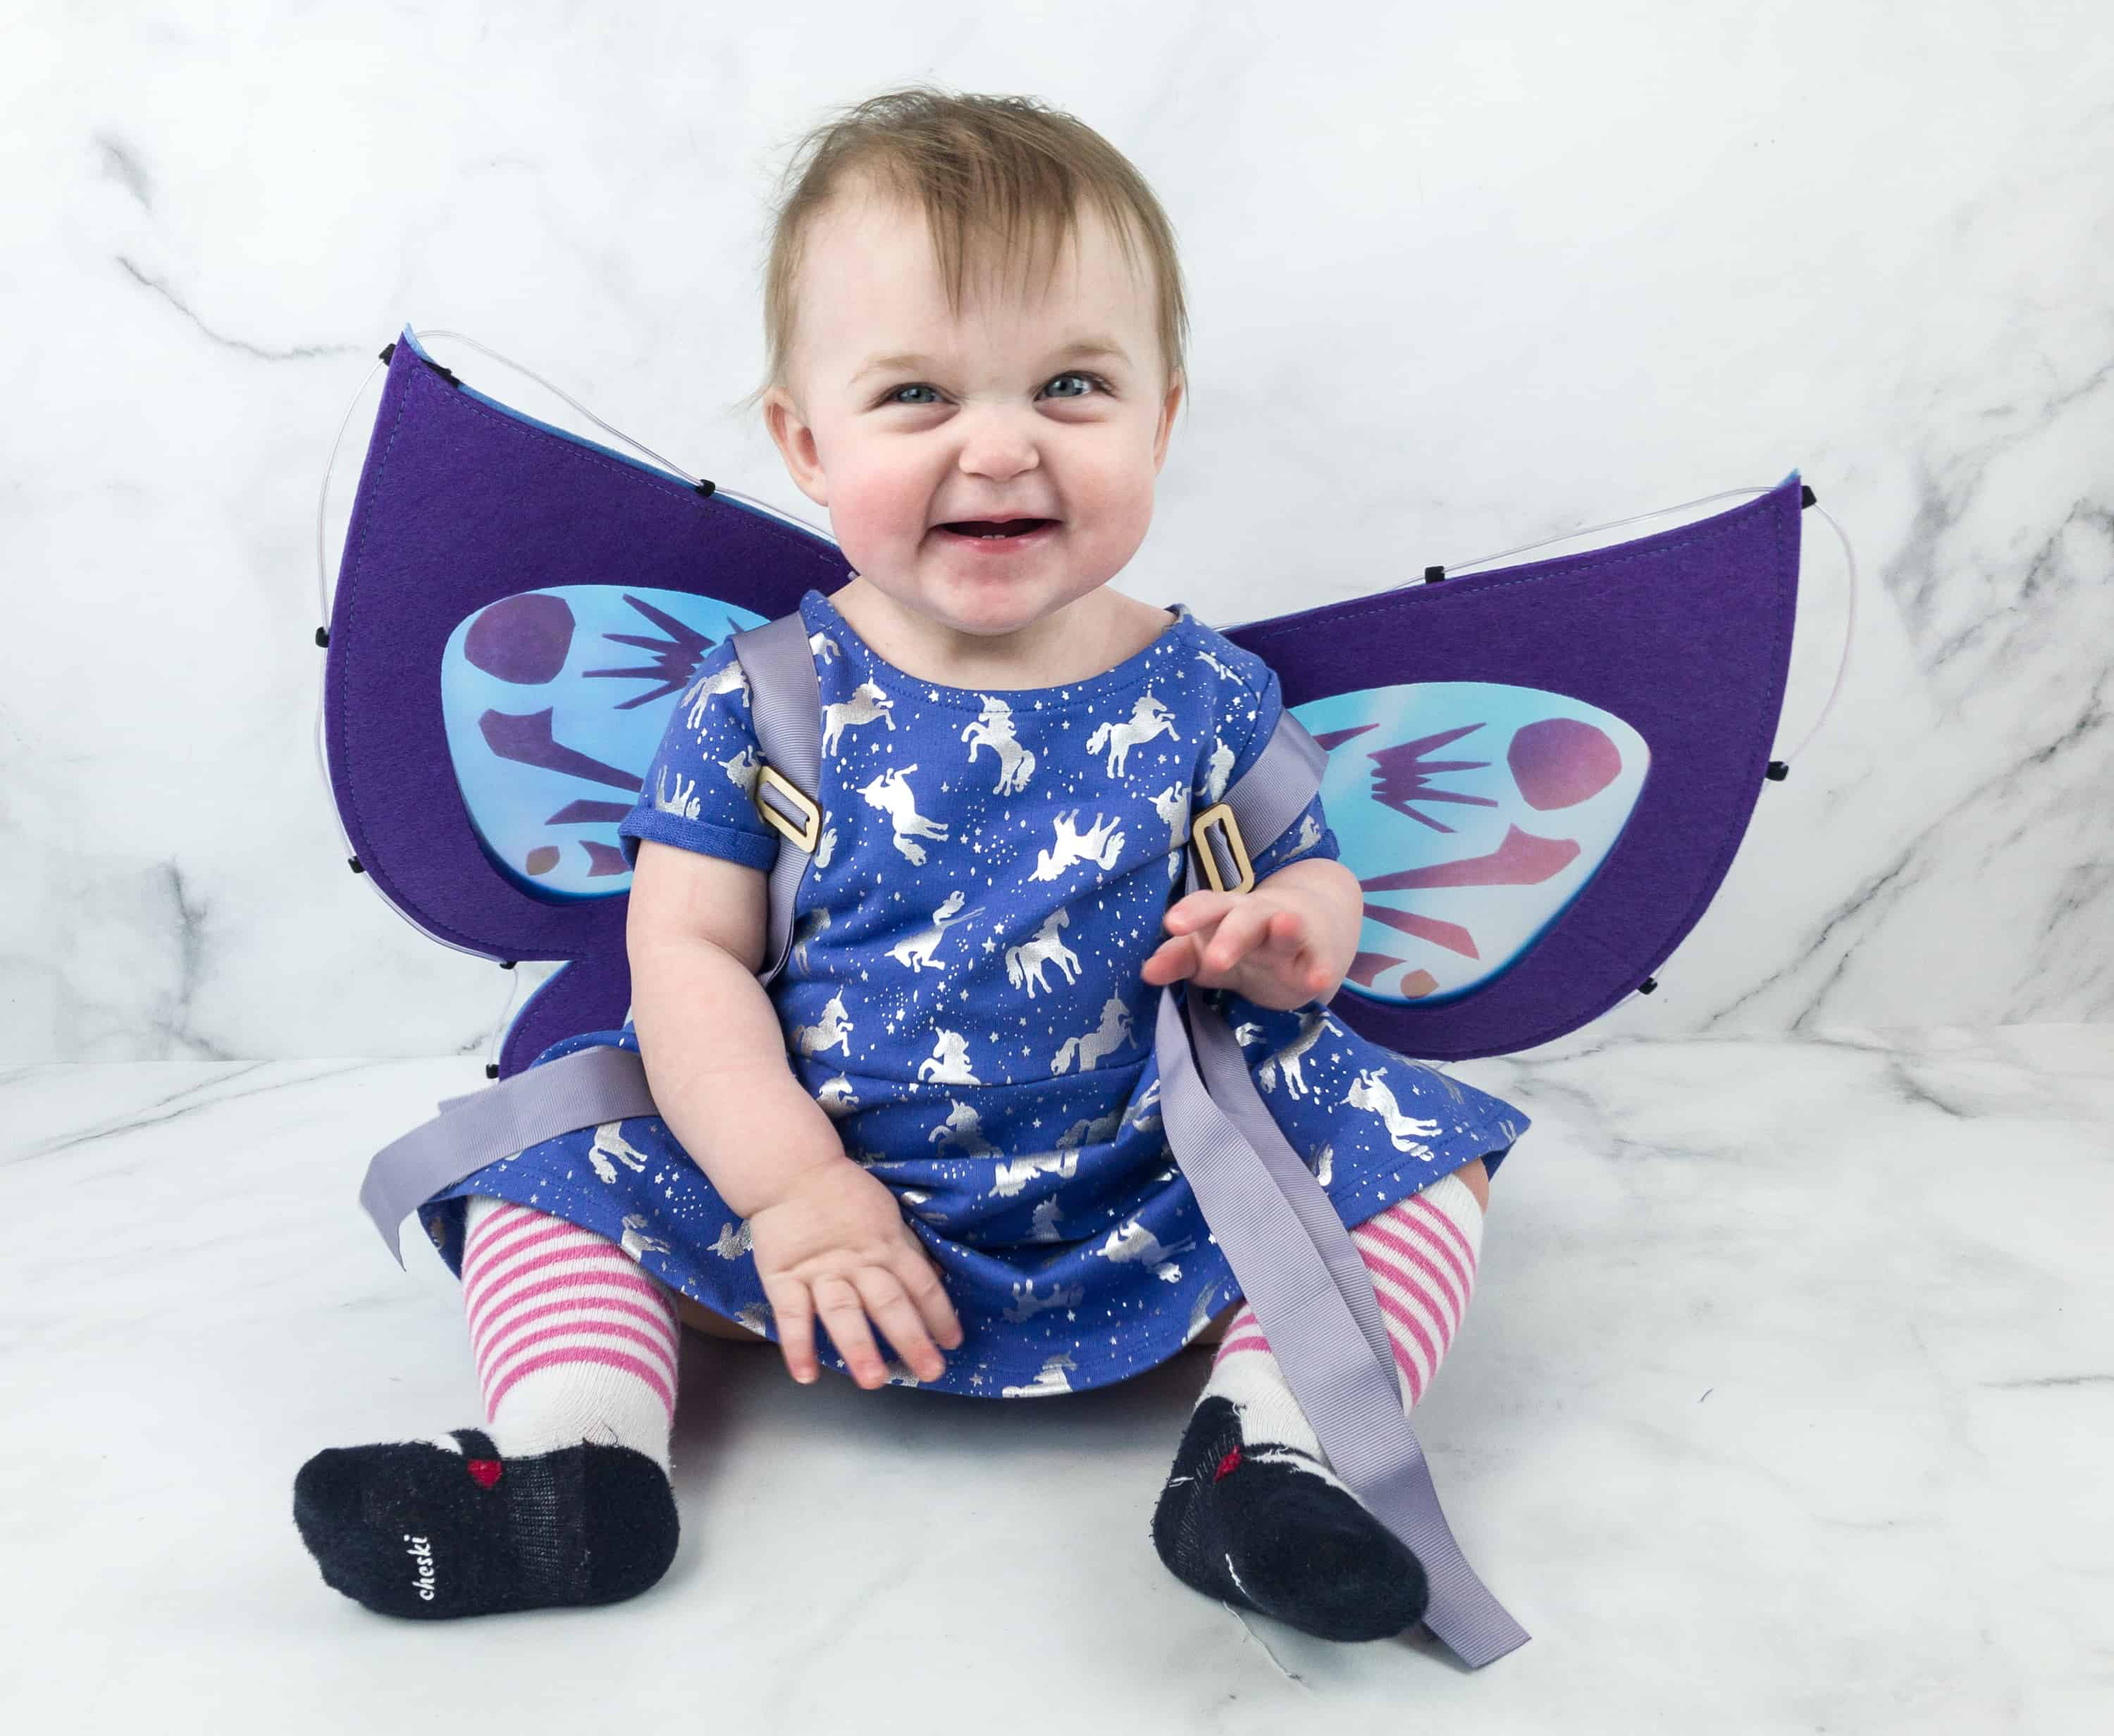 KiwiCo Holiday Crate 2018 Review & Coupon – FAIRY WINGS COSTUME KIT